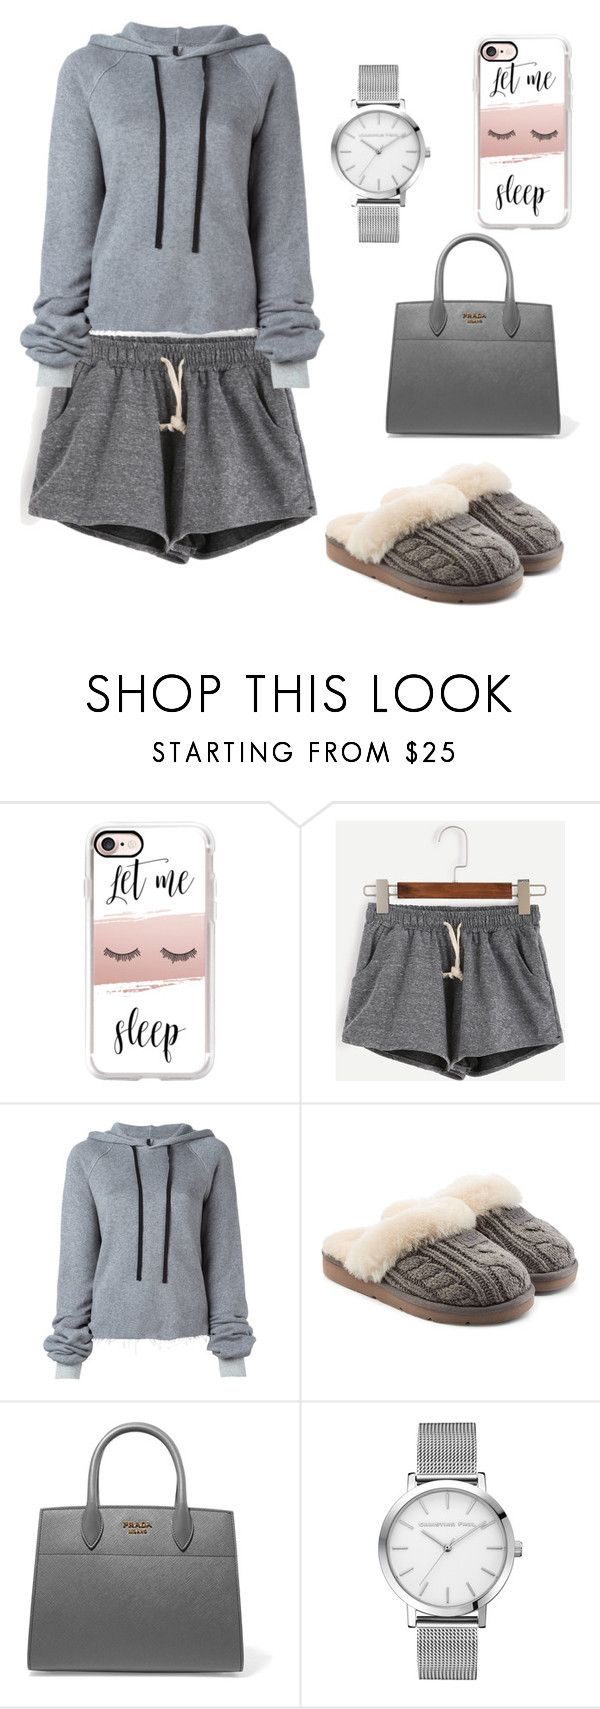 """""""#let me sleep"""" by ahk123 ❤ liked on Polyvore featuring Casetify, Unravel, UGG and Prada"""